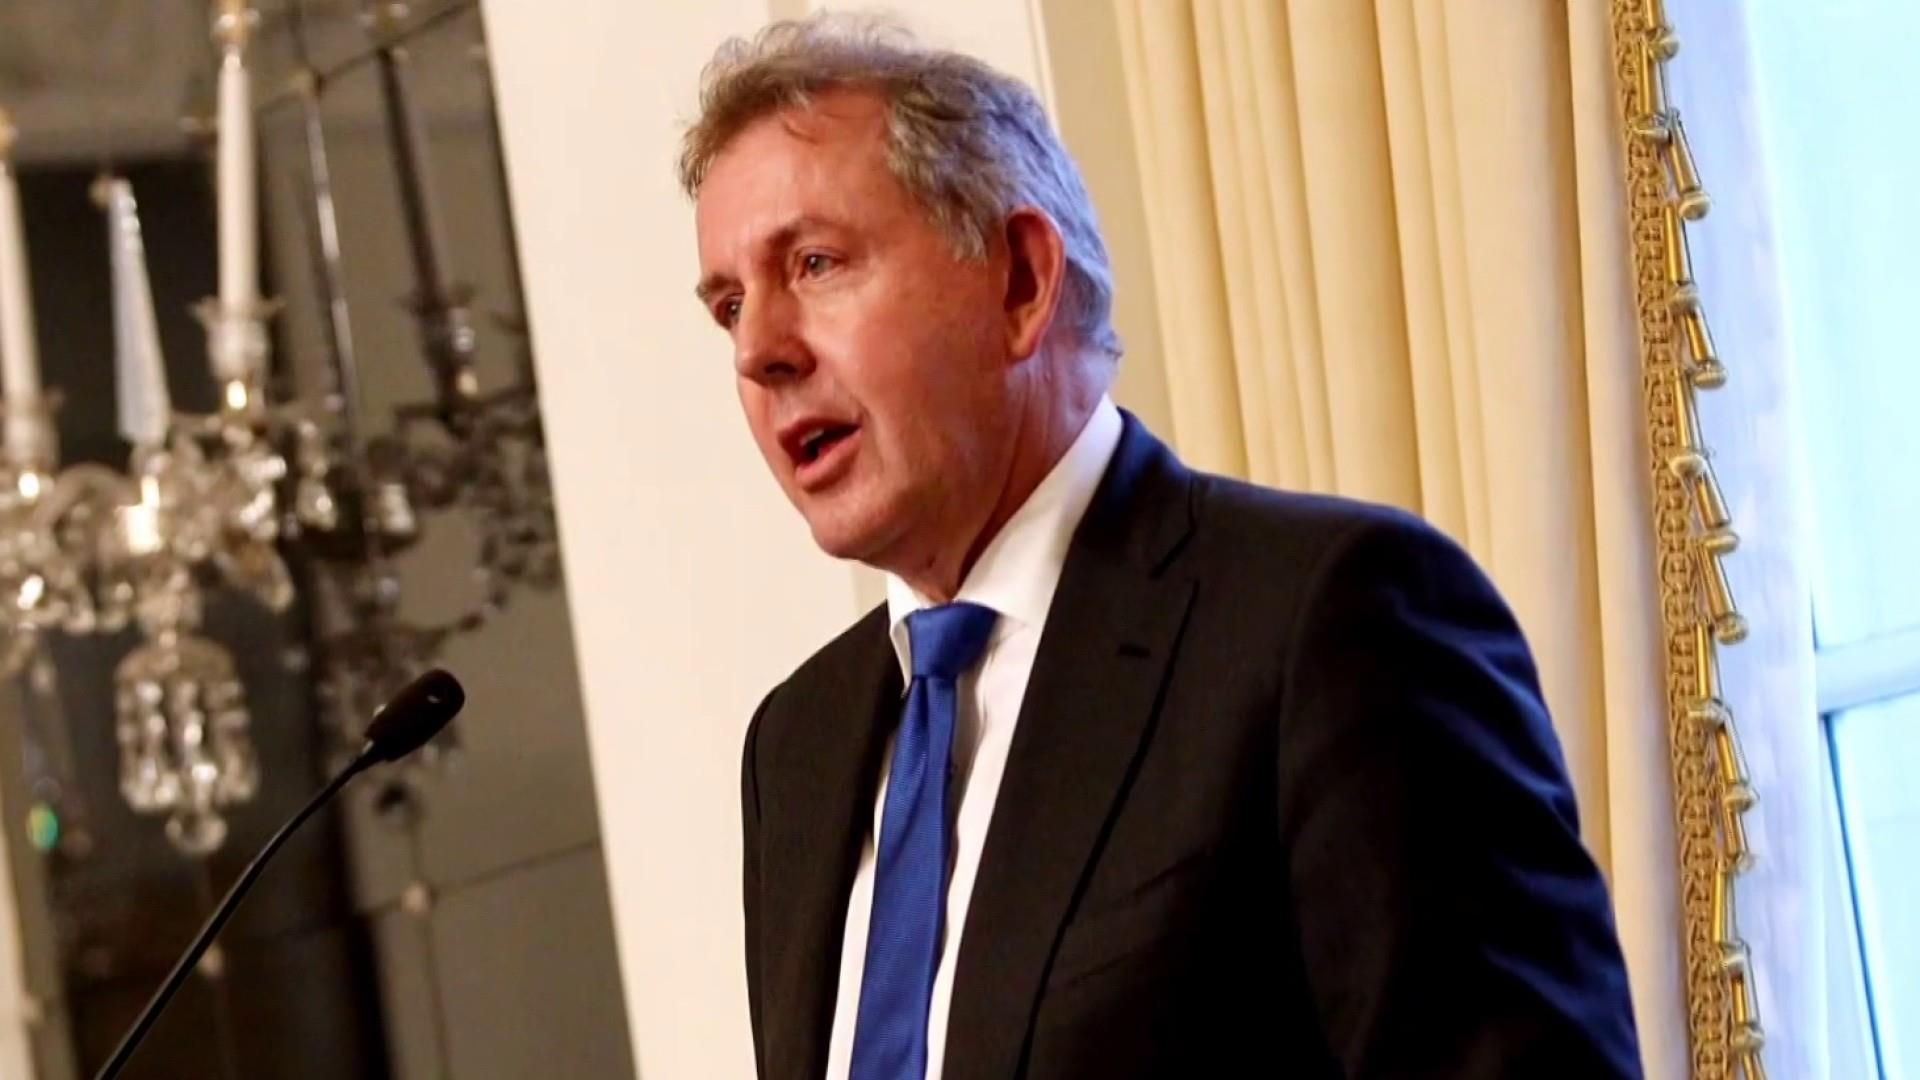 Sir Kim Darroch has resigned as UK Ambassador to the U.S. What's next?